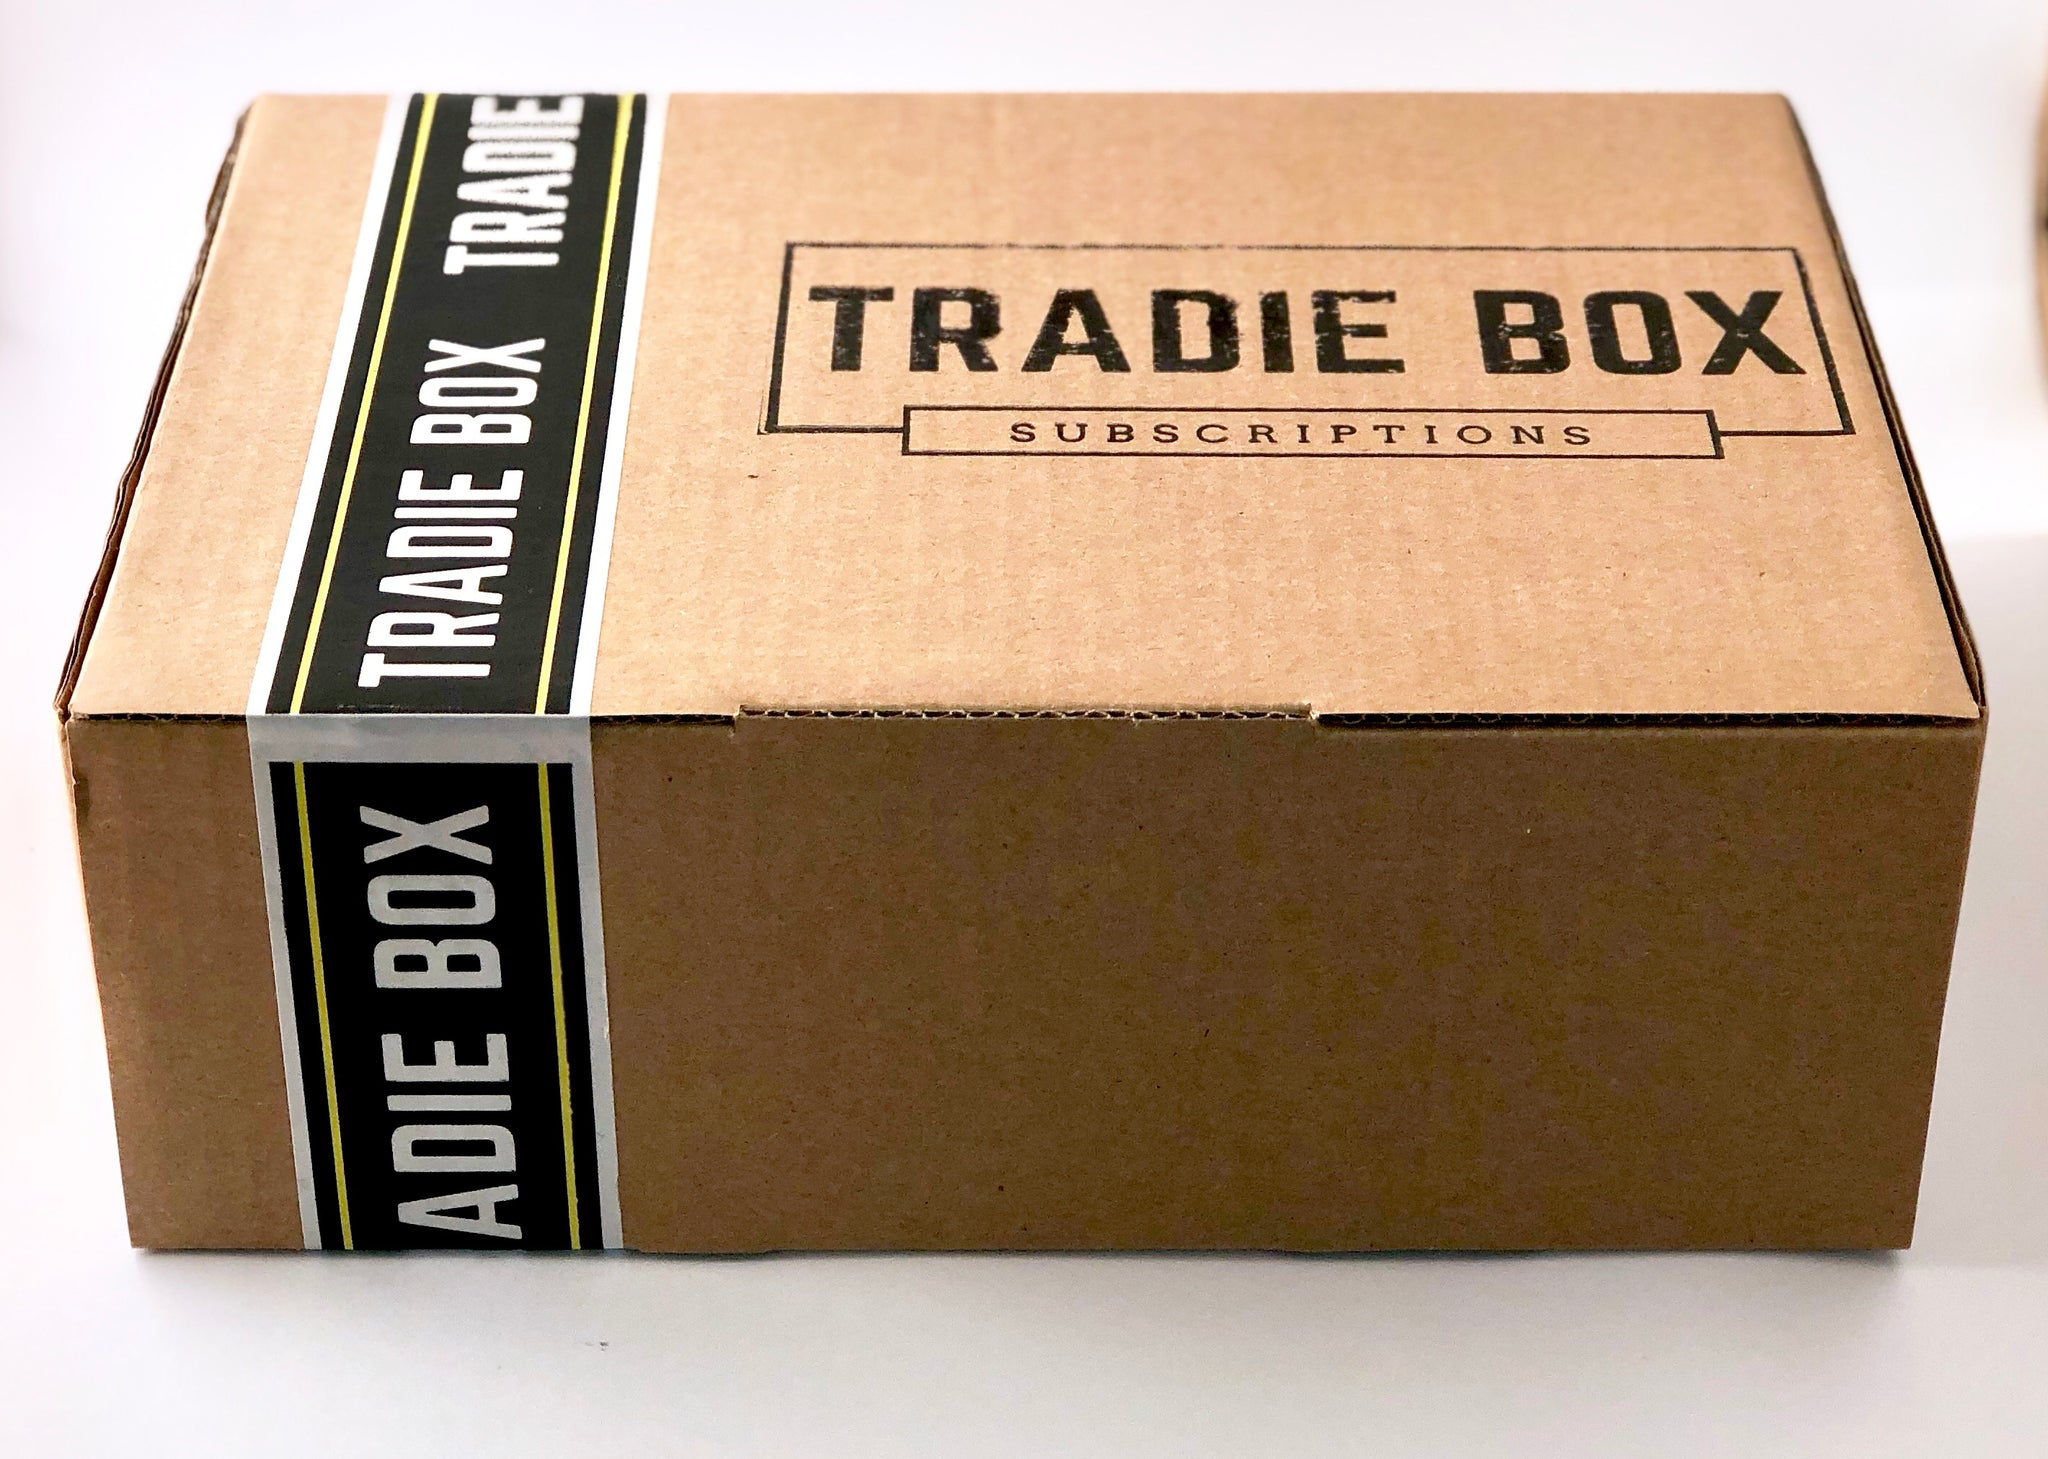 Tradiebox, Tradiebabe, Subscription Box, Tradie, DIYer, Apparel, Tools, PPE, Skincare, Tech, Gadgets